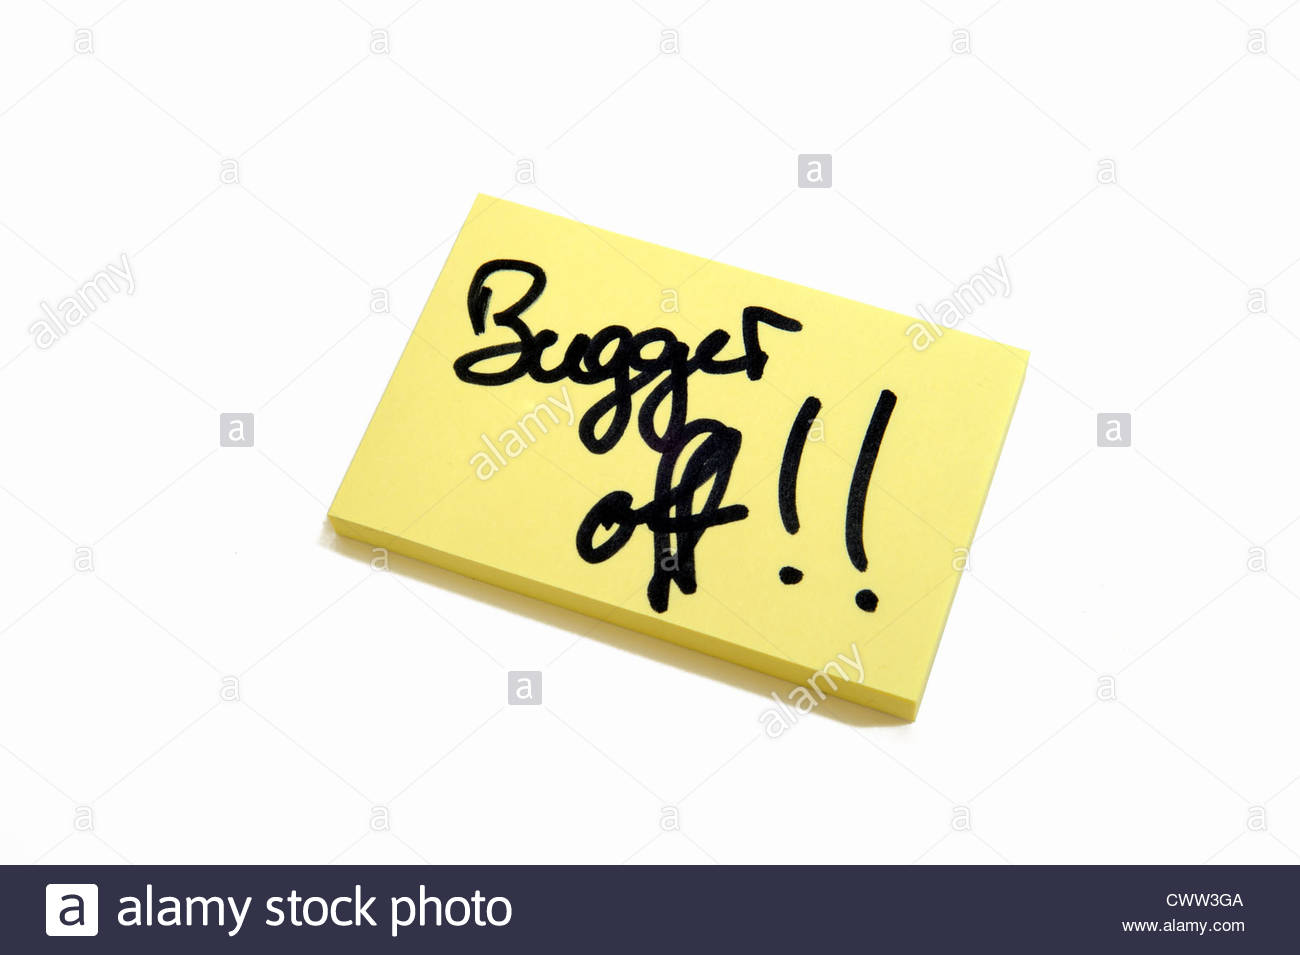 Post it note  Bugger off!! Private. - Stock Image